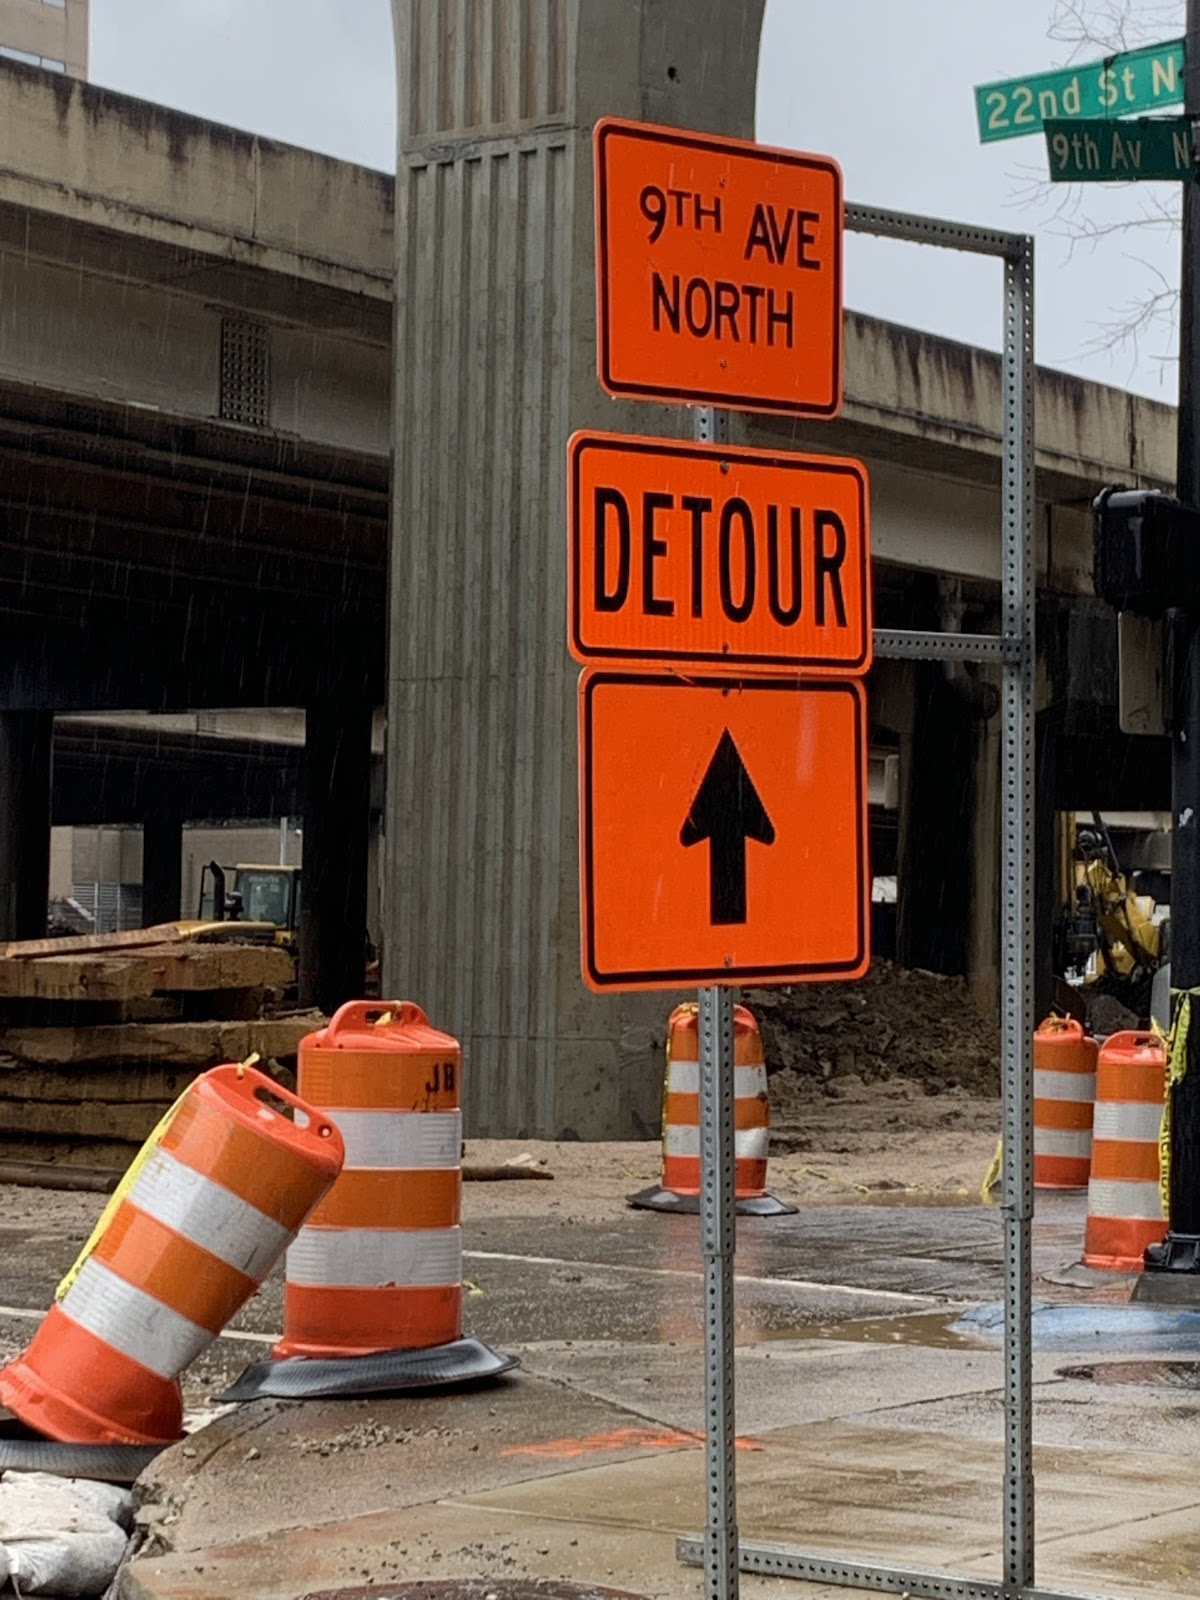 I called the 59/20 road closure hotline: Here's what happened